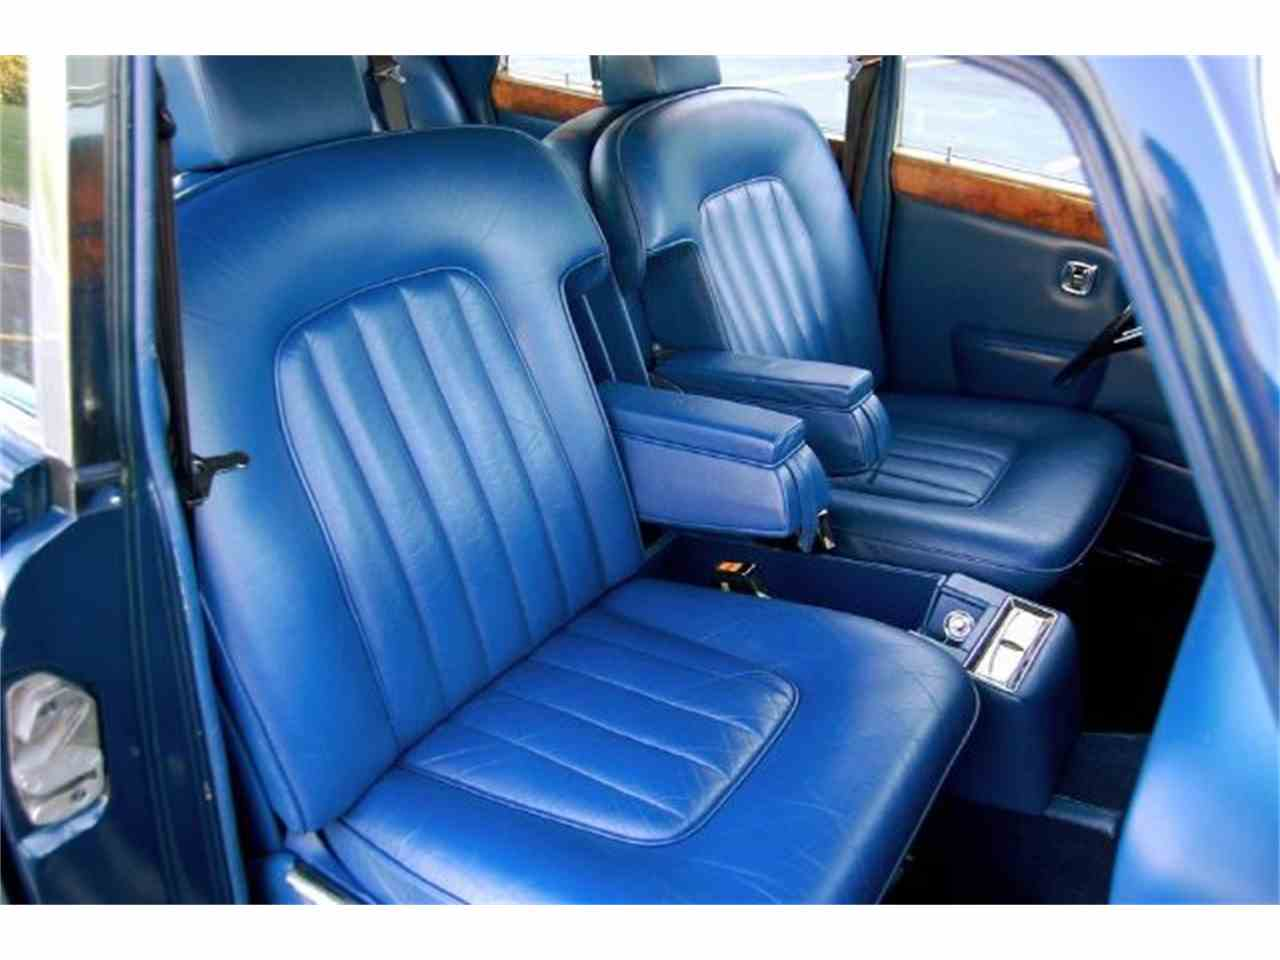 Large Picture of Classic 1973 Rolls-Royce Silver Shadow located in Carey Illinois Auction Vehicle Offered by Park-Ward Motors - A949